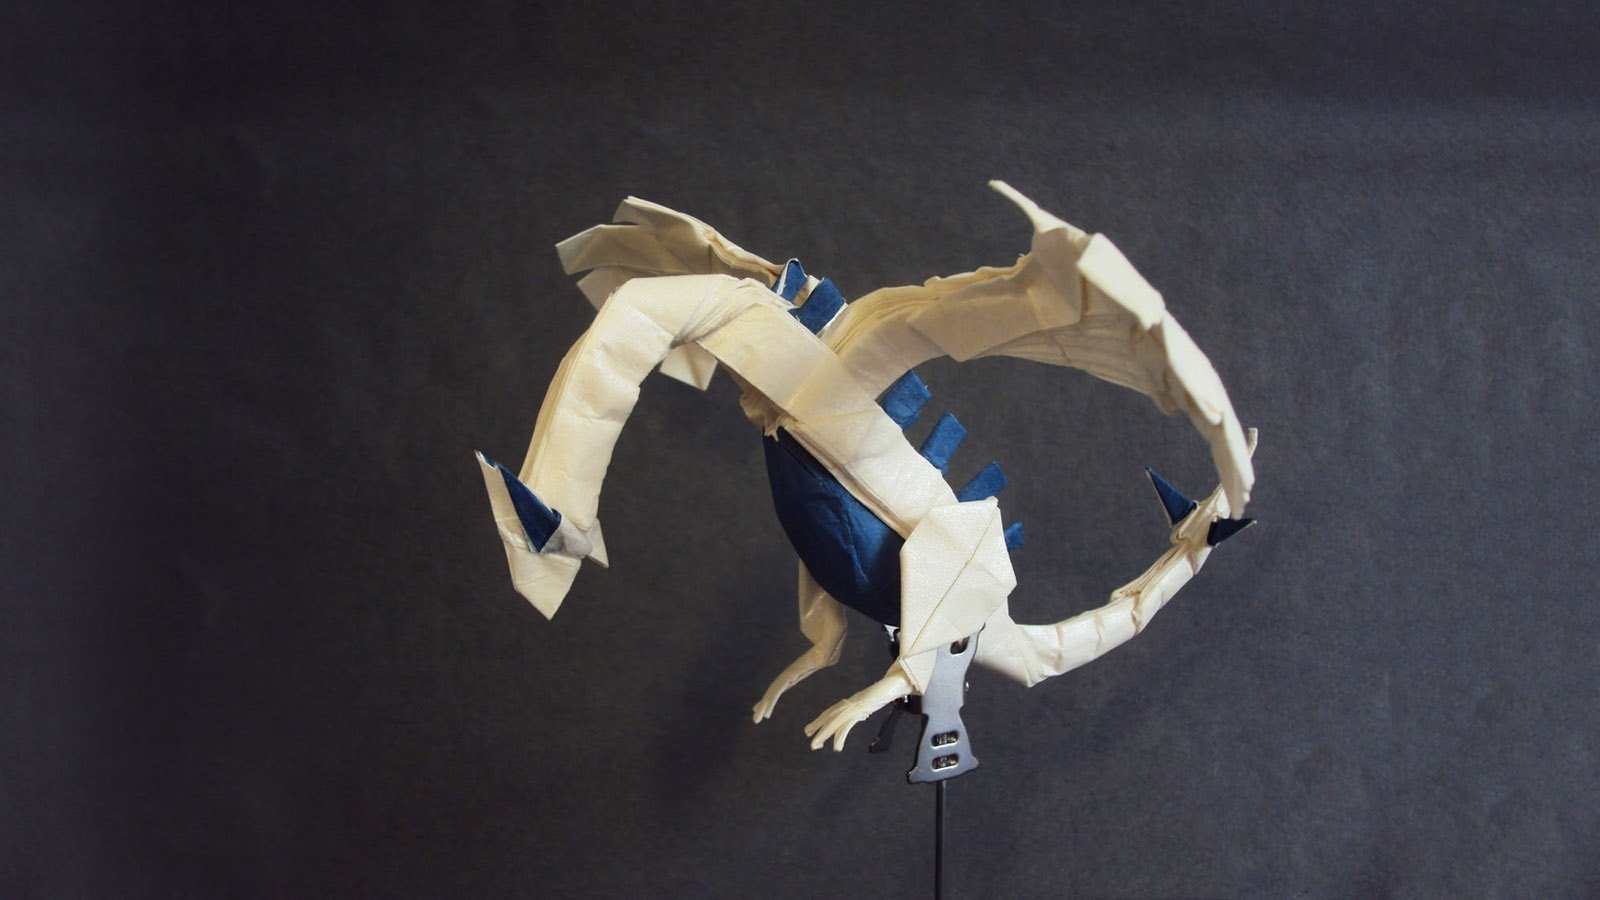 Magnificent Origami Sharks To Celebrate Shark Awareness Day Diagram Lugia